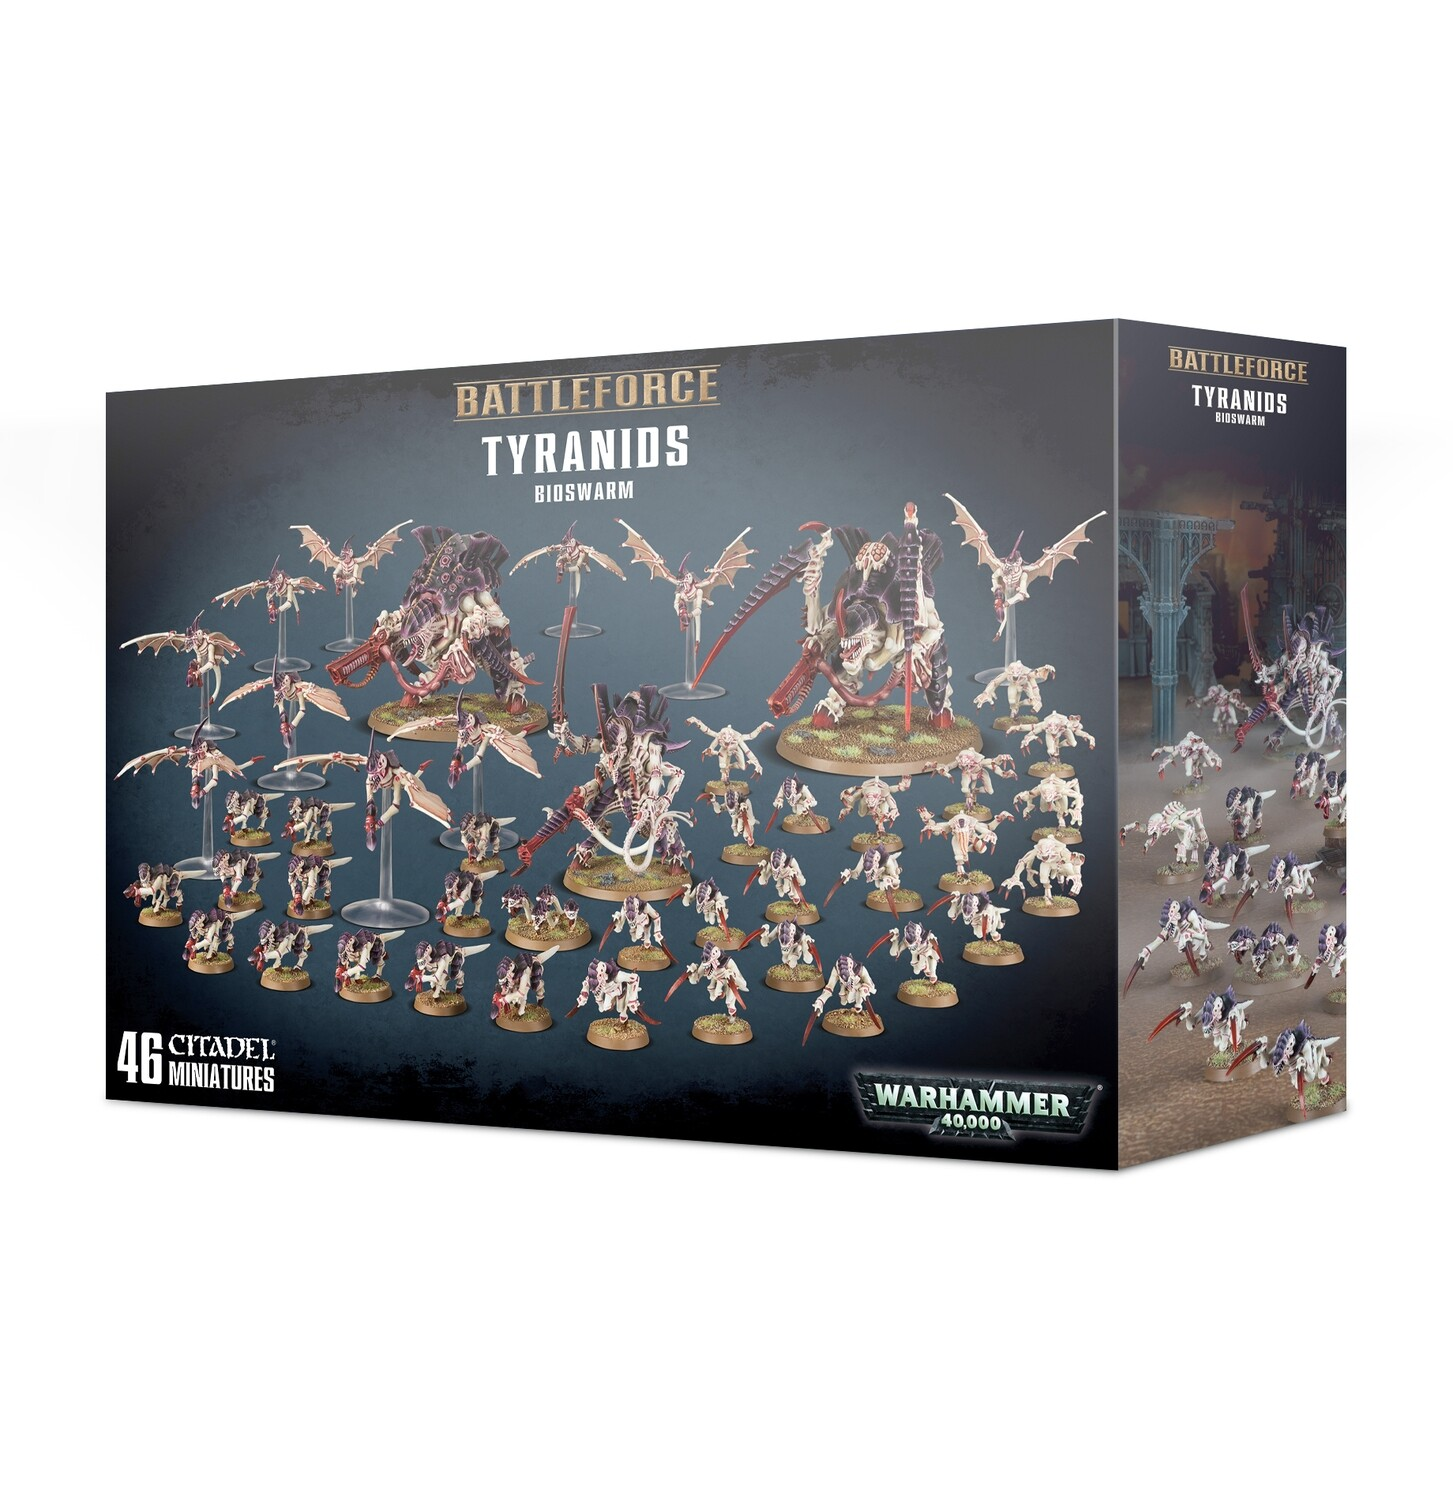 Battleforce: Tyranids Bioswarm - Warhammer 40.000 - Games Workshop